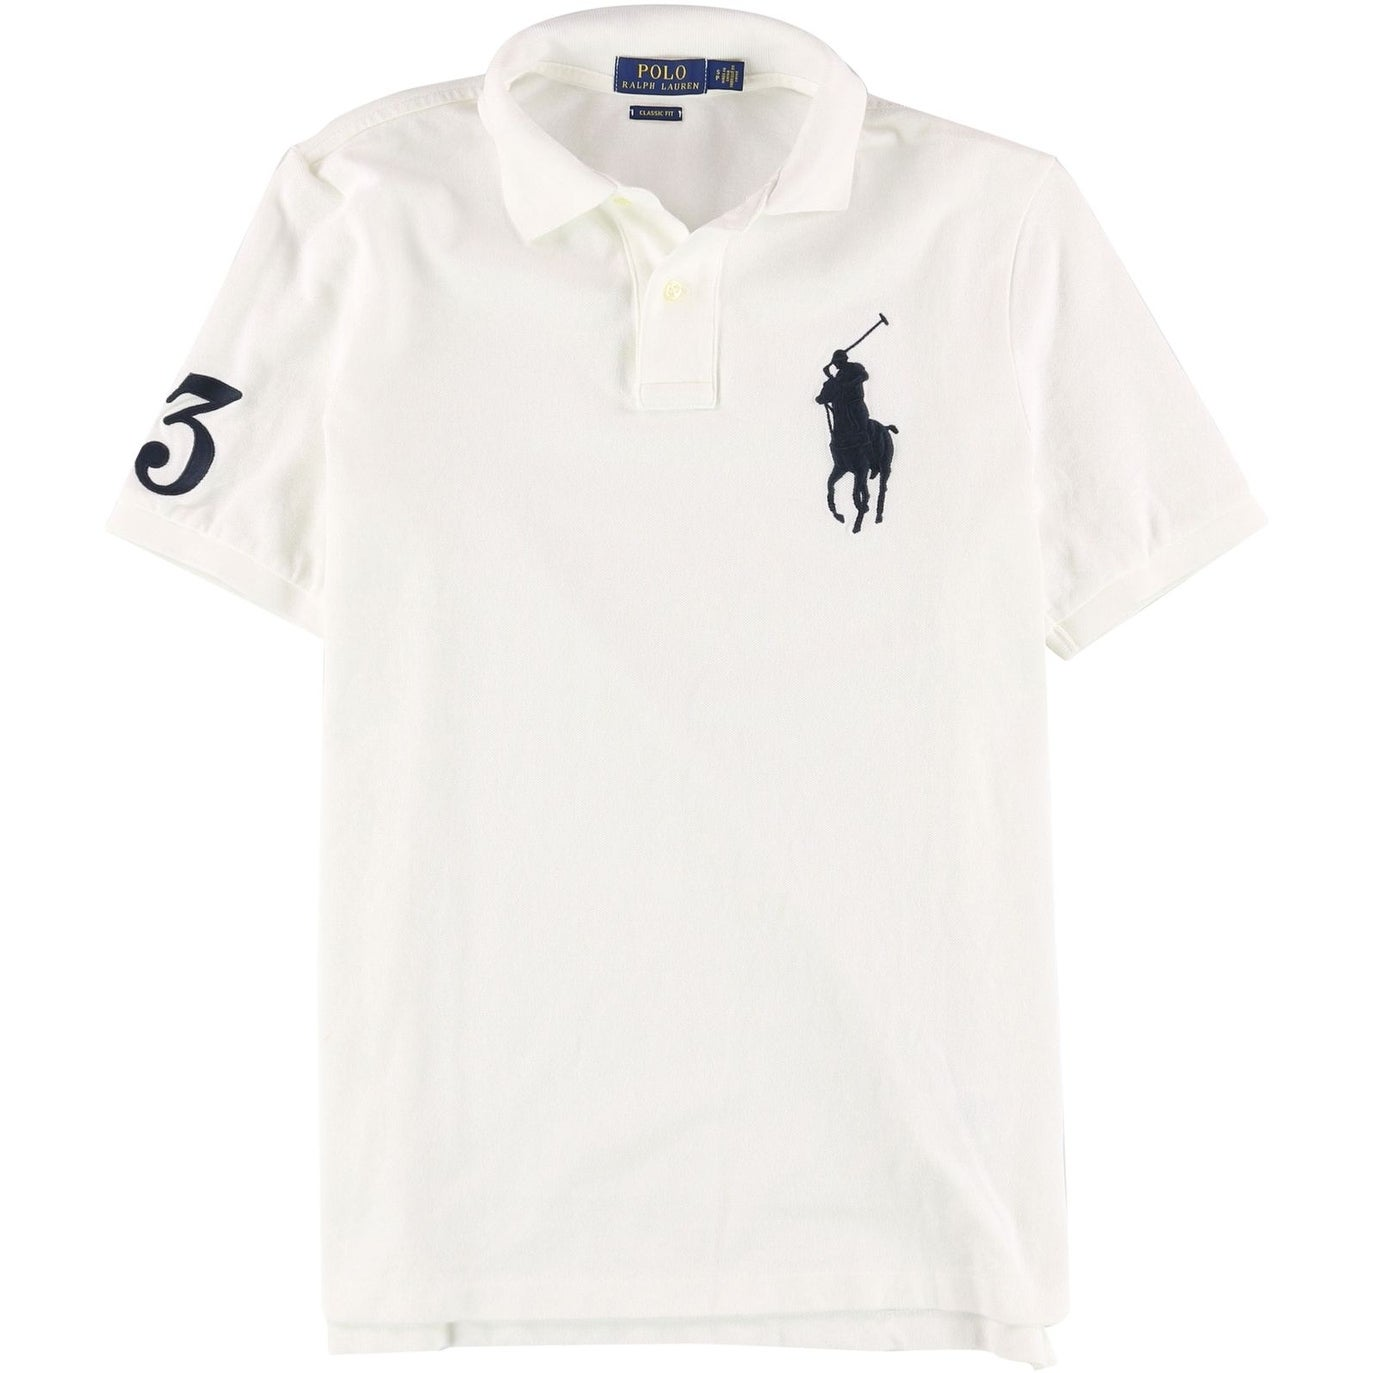 bb35b3664 Polo Ralph Lauren Shirts   Find Great Men's Clothing Deals Shopping at  Overstock